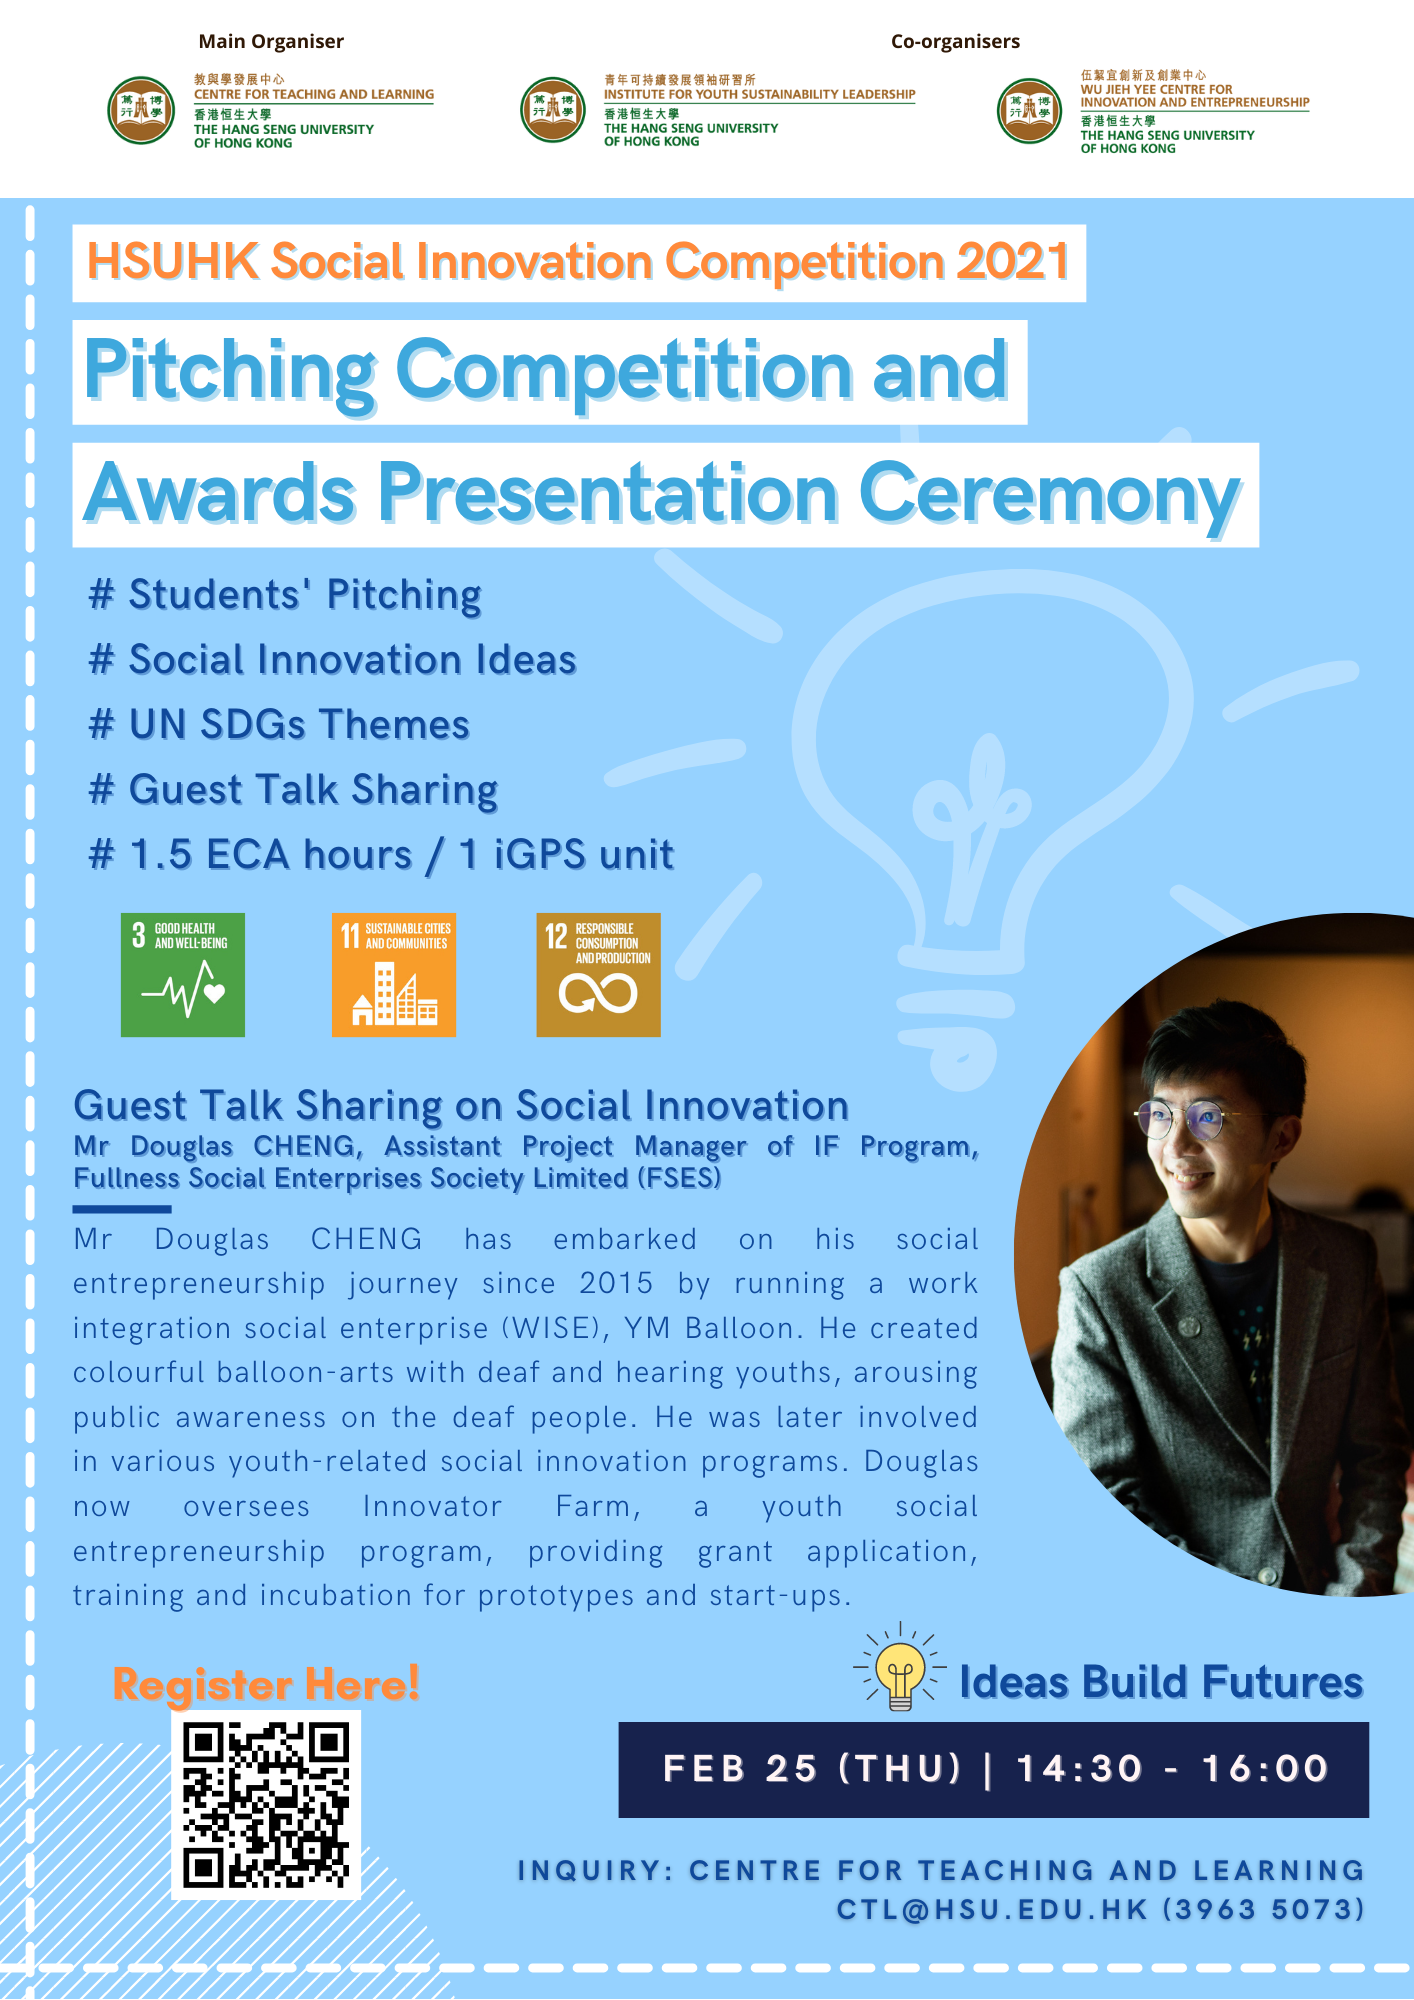 Poster_HSUHK Social Innovation Competition 2021_Pitching Competition